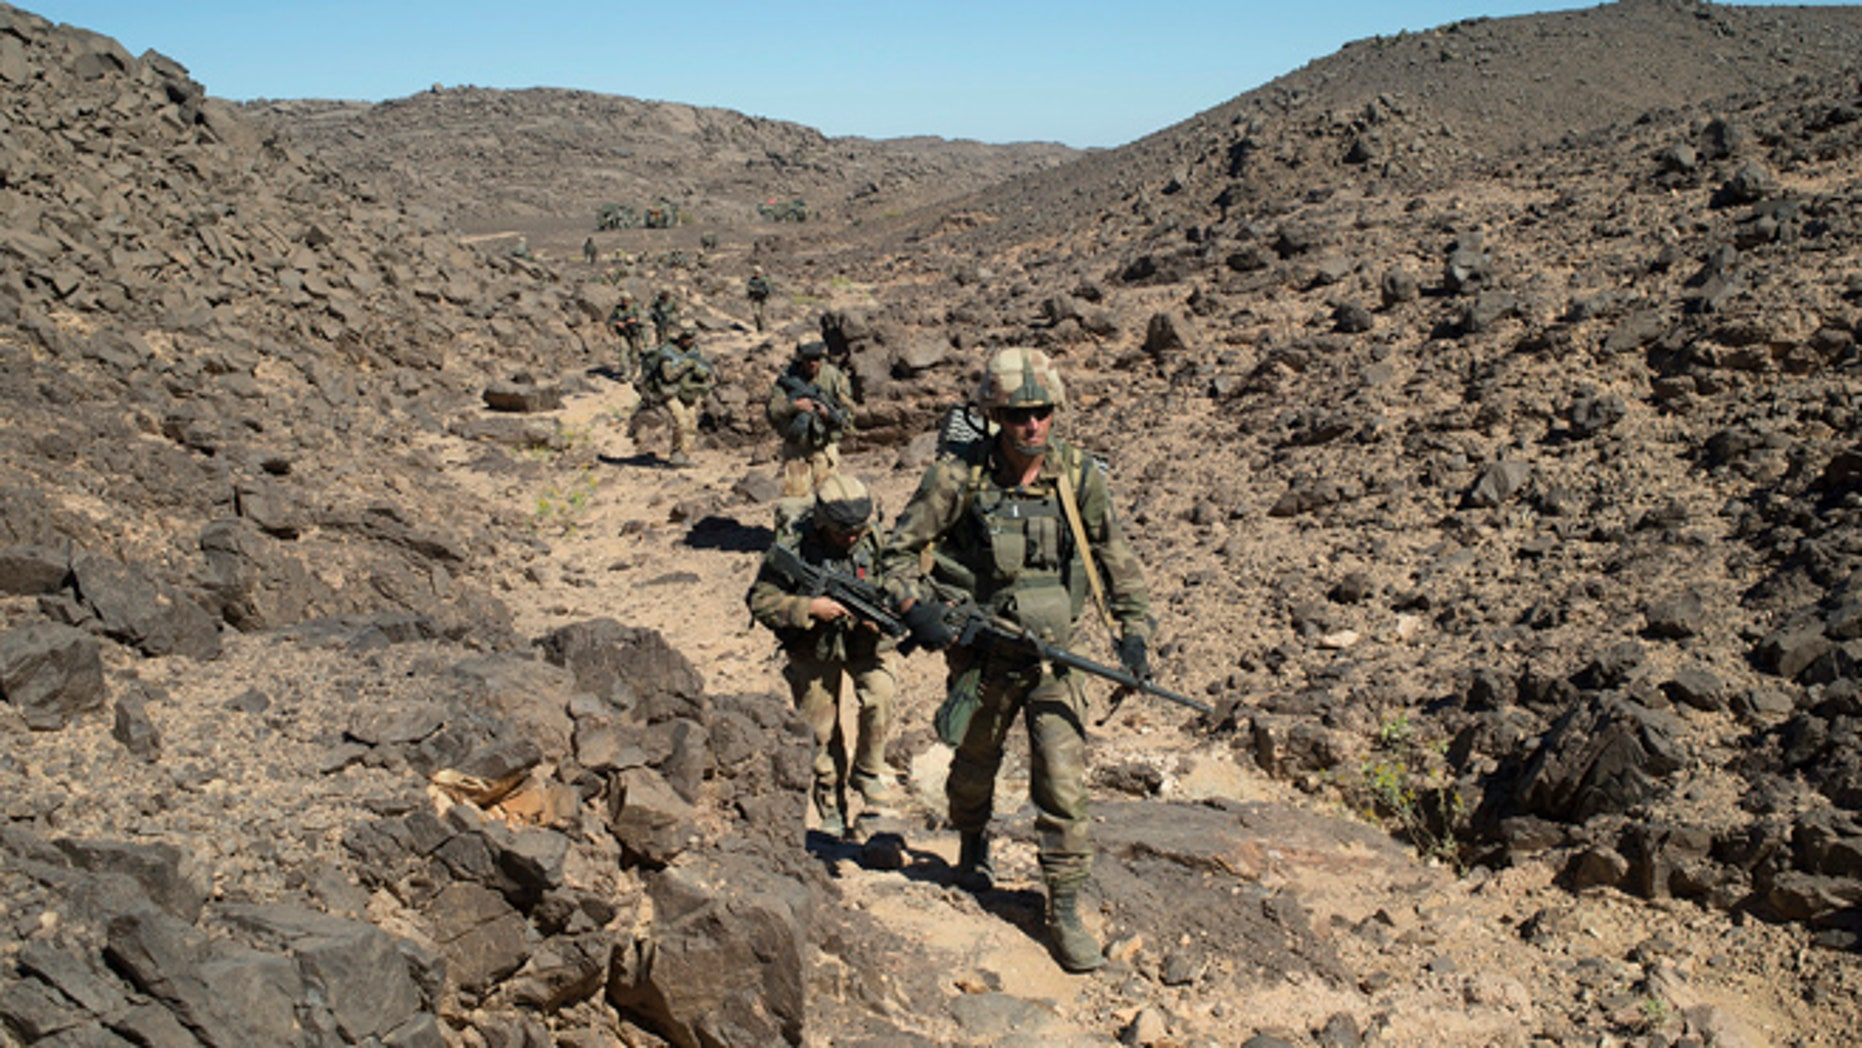 March 8, 2013: In this photo taken by the French Army Communications Audiovisual office (ECPAD) shows French soldiers patrolling in the Mettatai region in northern Mali.